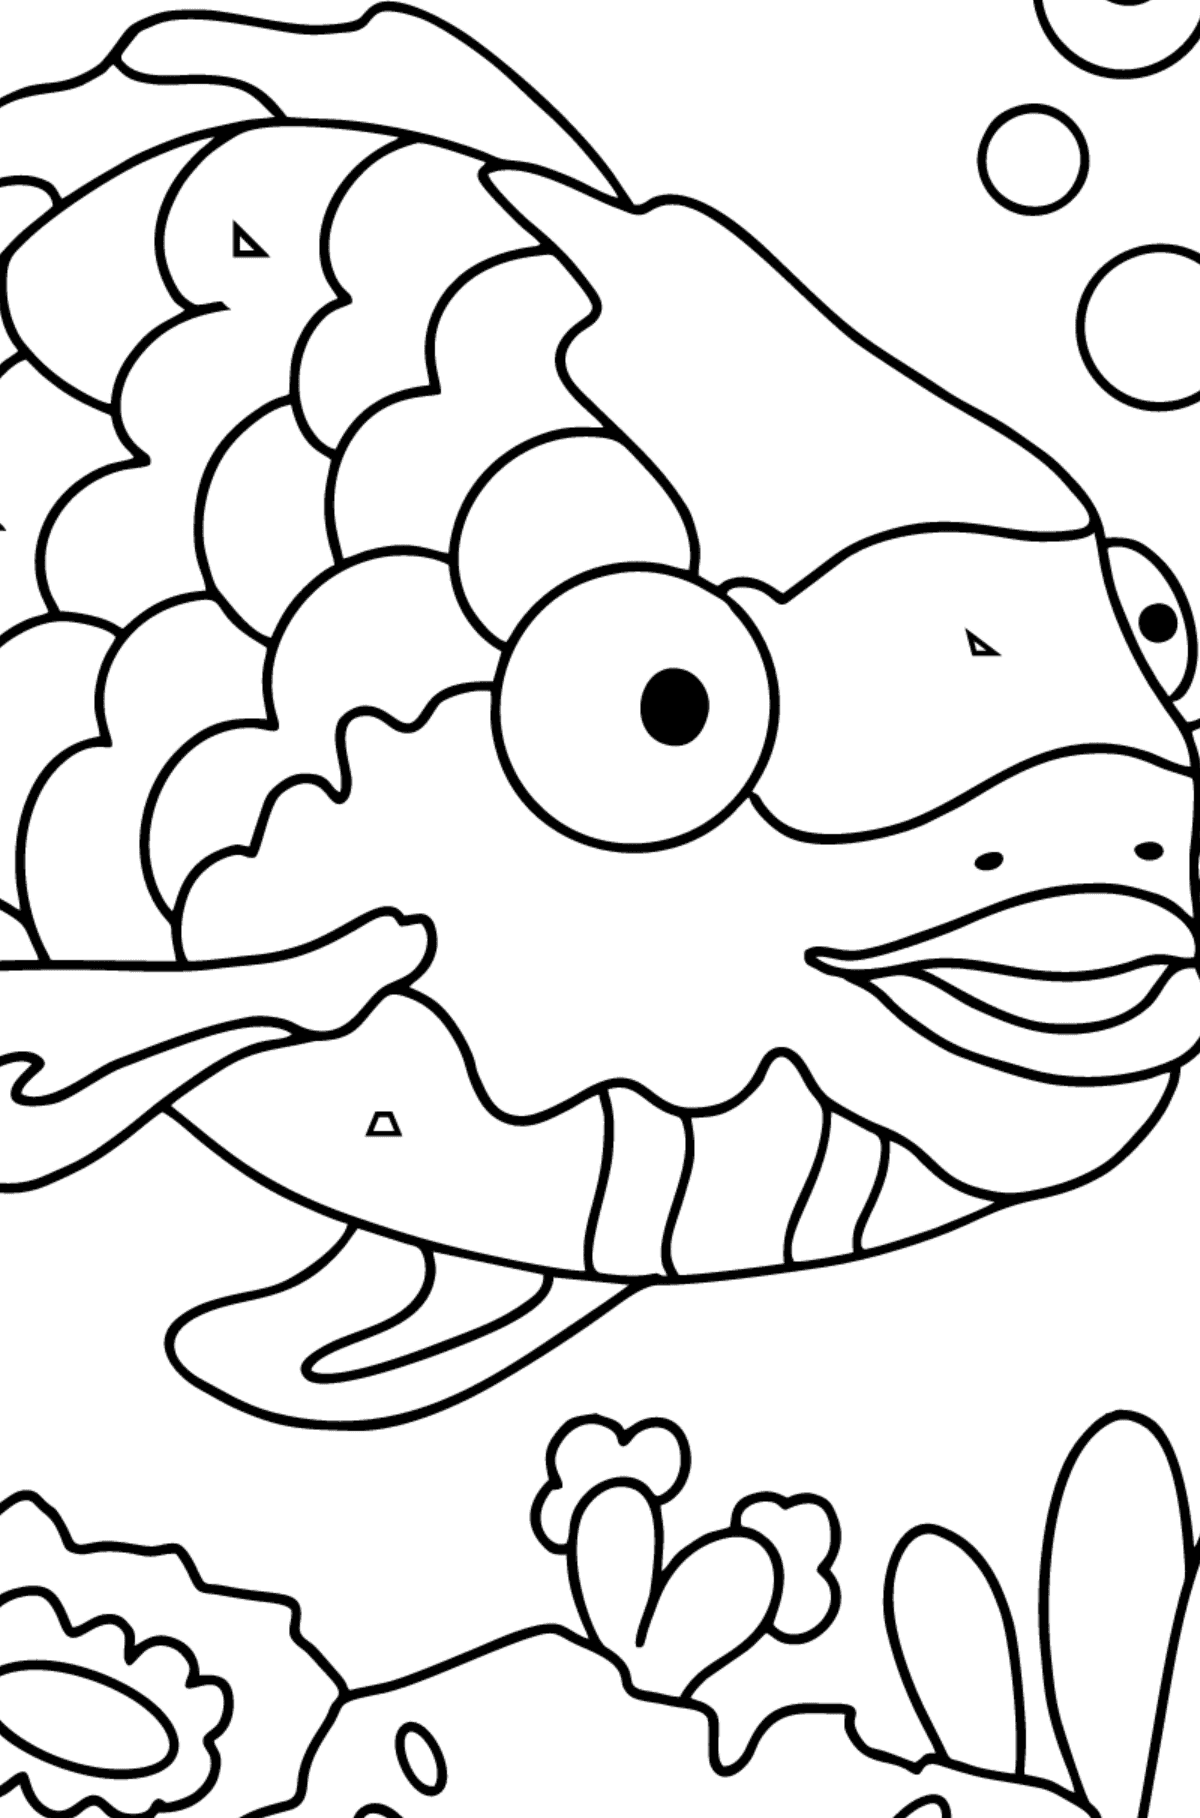 Coloring Page - A Fish with Multicolored Scales - Coloring by Geometric Shapes for Children